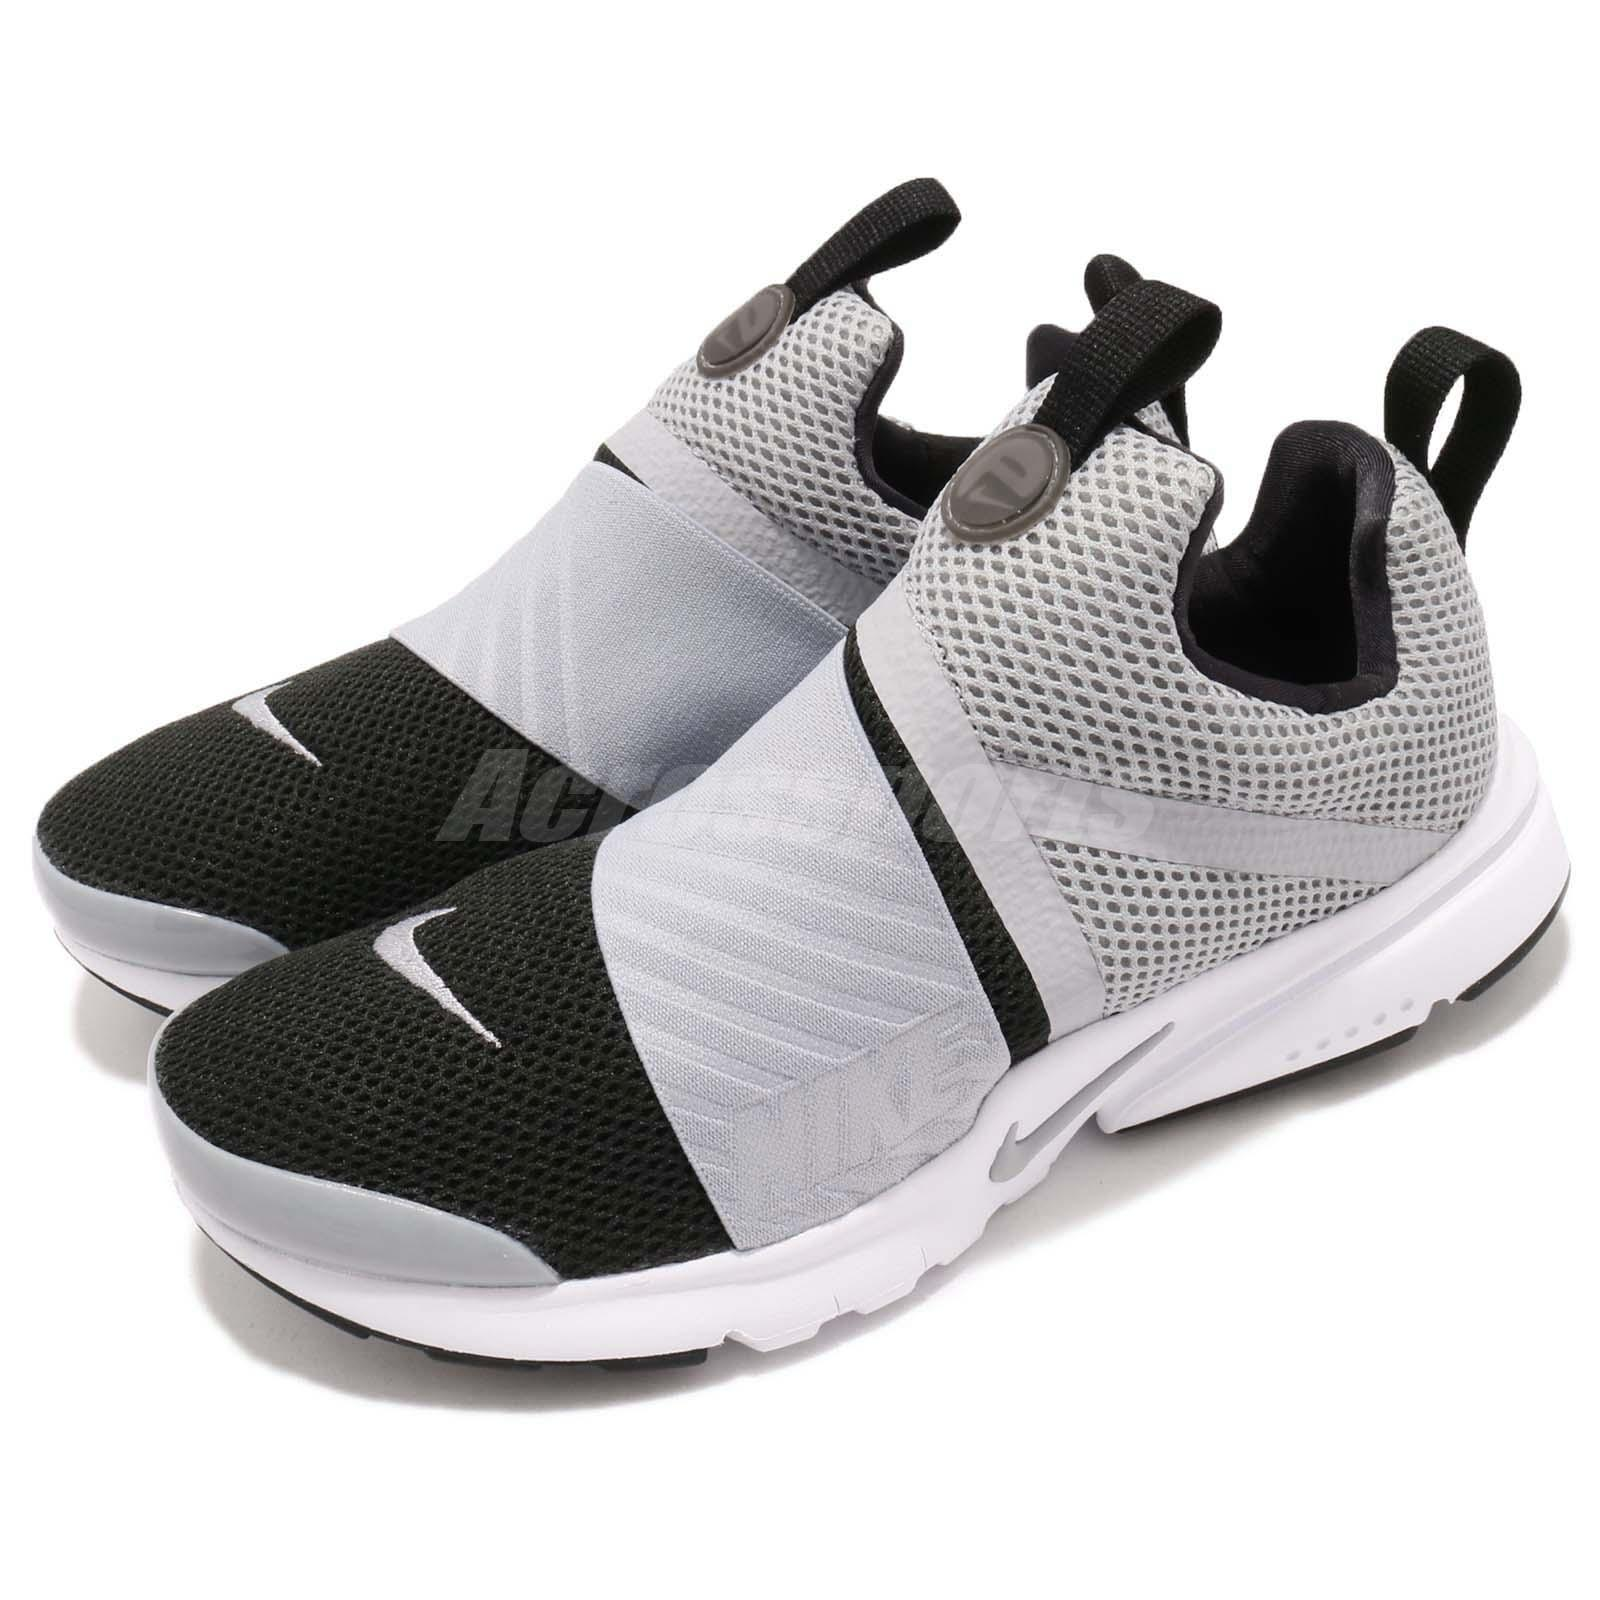 buy popular 97b17 9c708 Details about Nike Presto Extreme GS Grey Black White Kid Youth Women  Running Shoes 870020-006